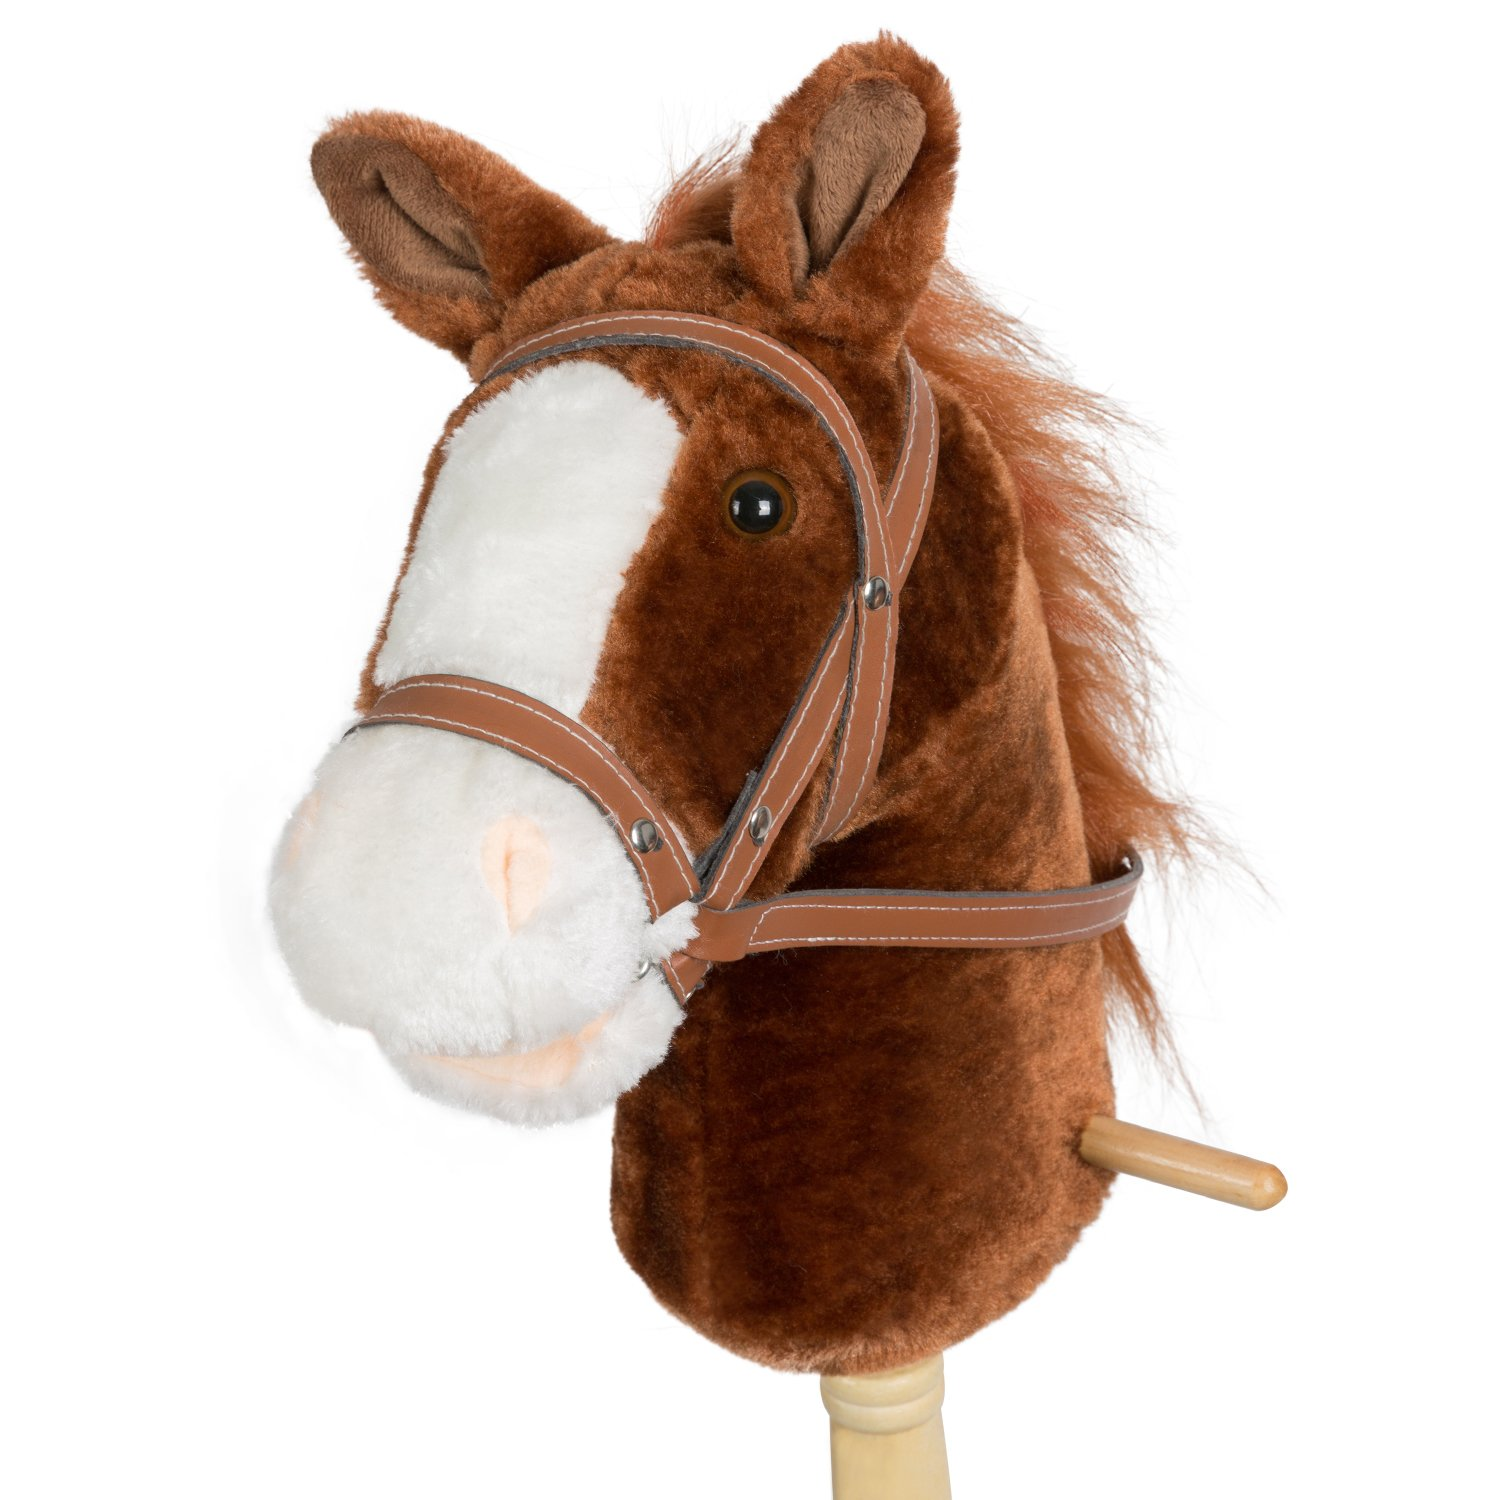 Wooden stick pink horse kids..REALISTIC SOUNDS yee haa!! BATON CHEVAL